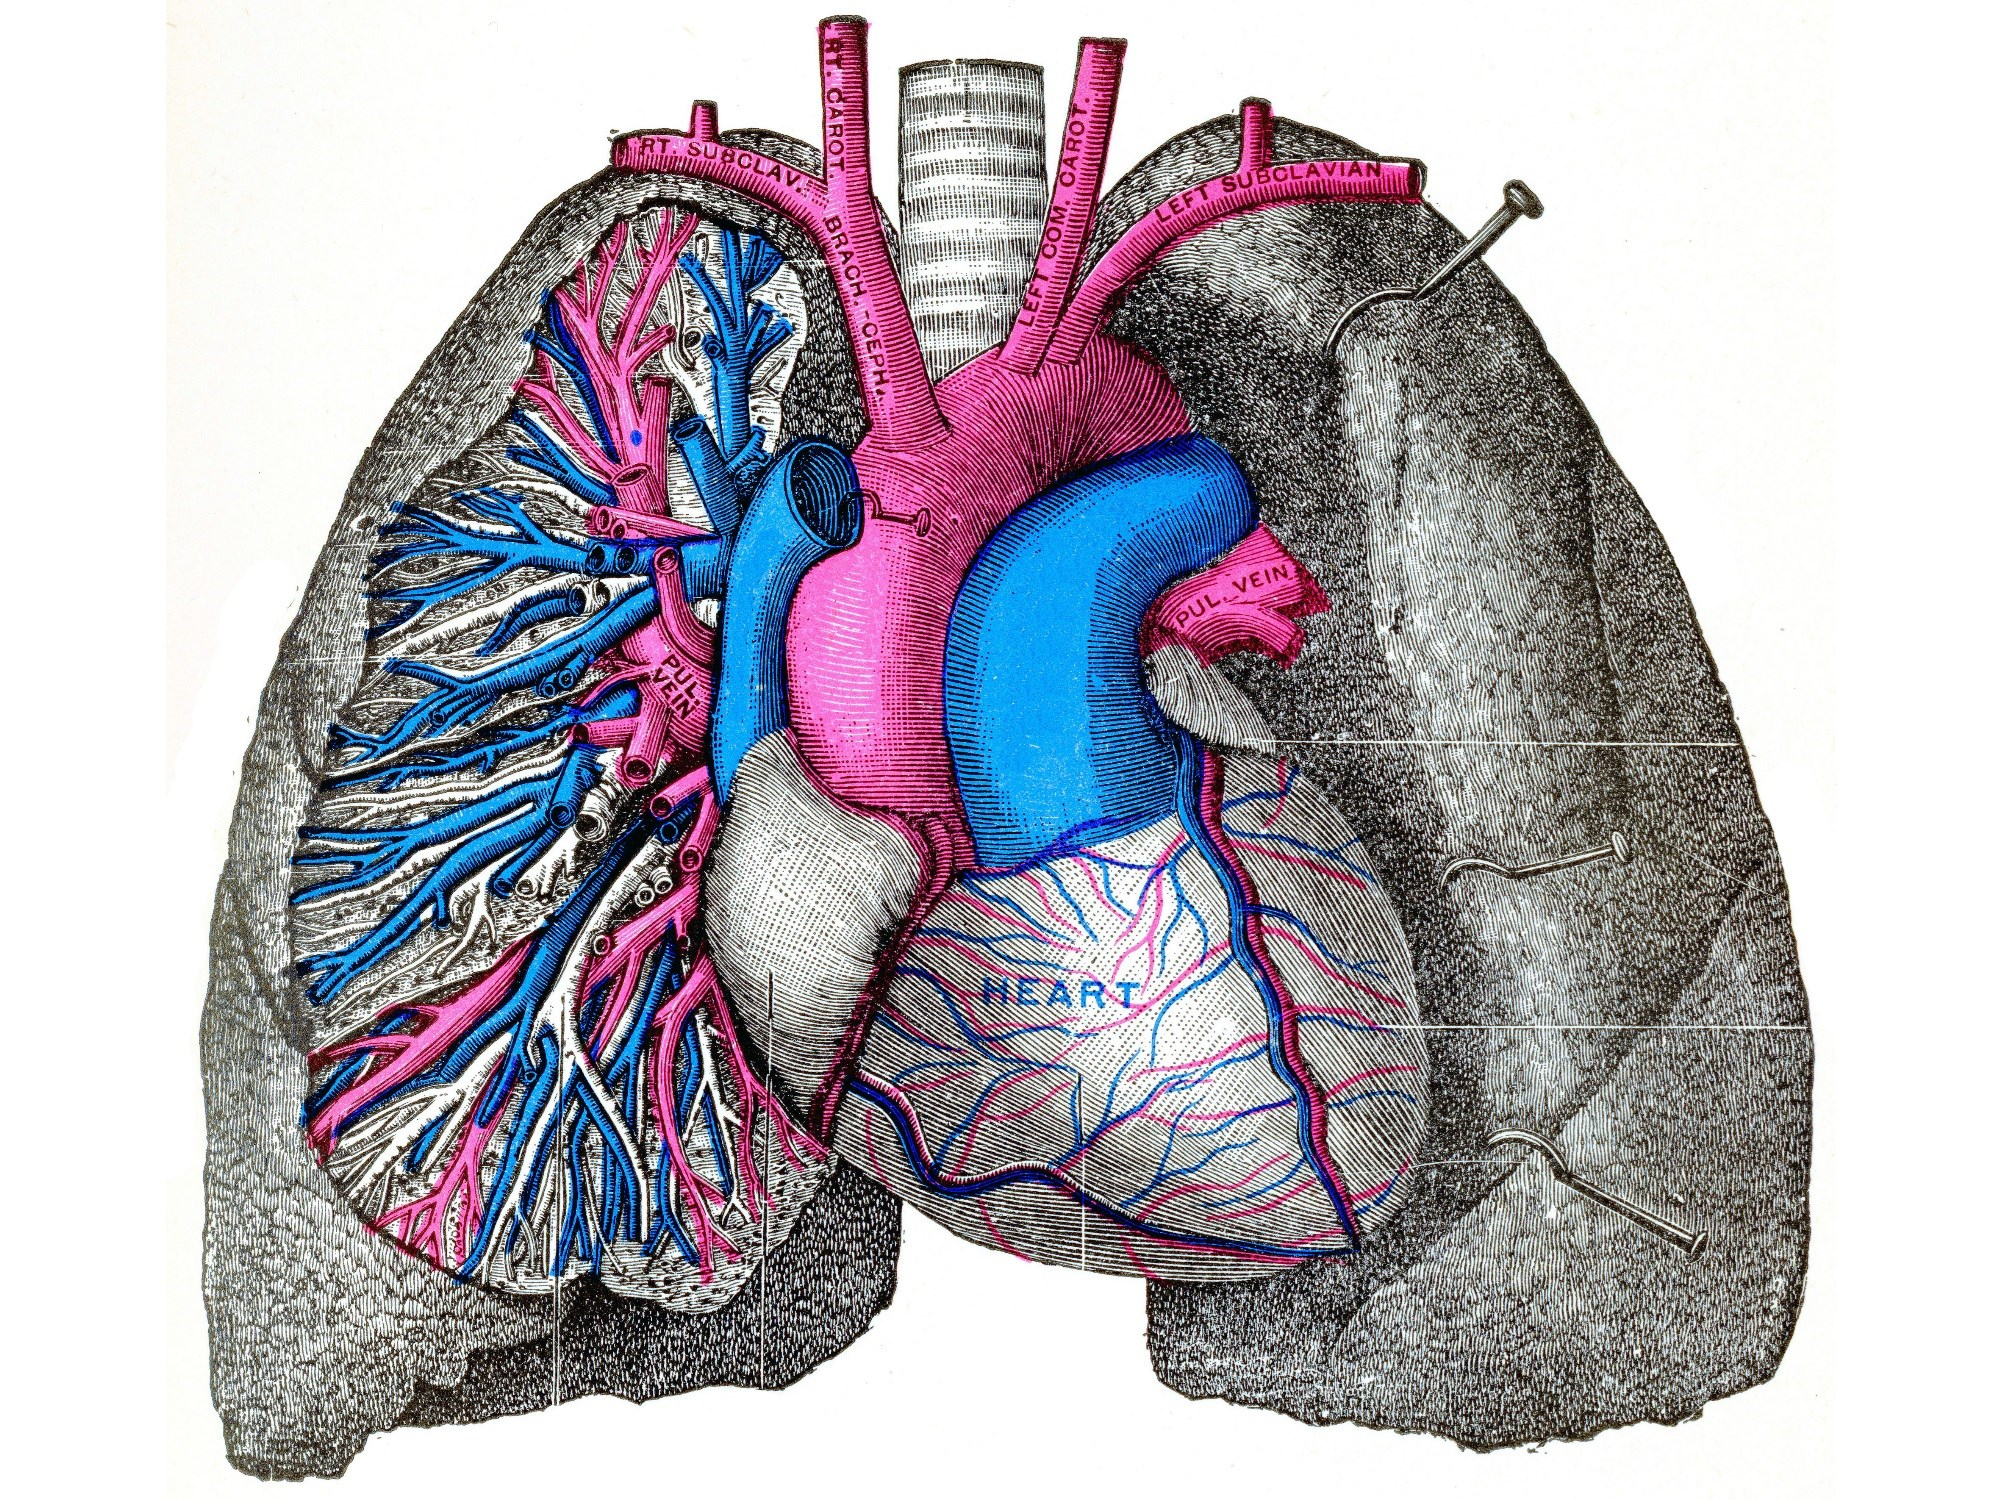 Researchers Identify Golden Ratio Between Pulmonary Pressure Components in PAH